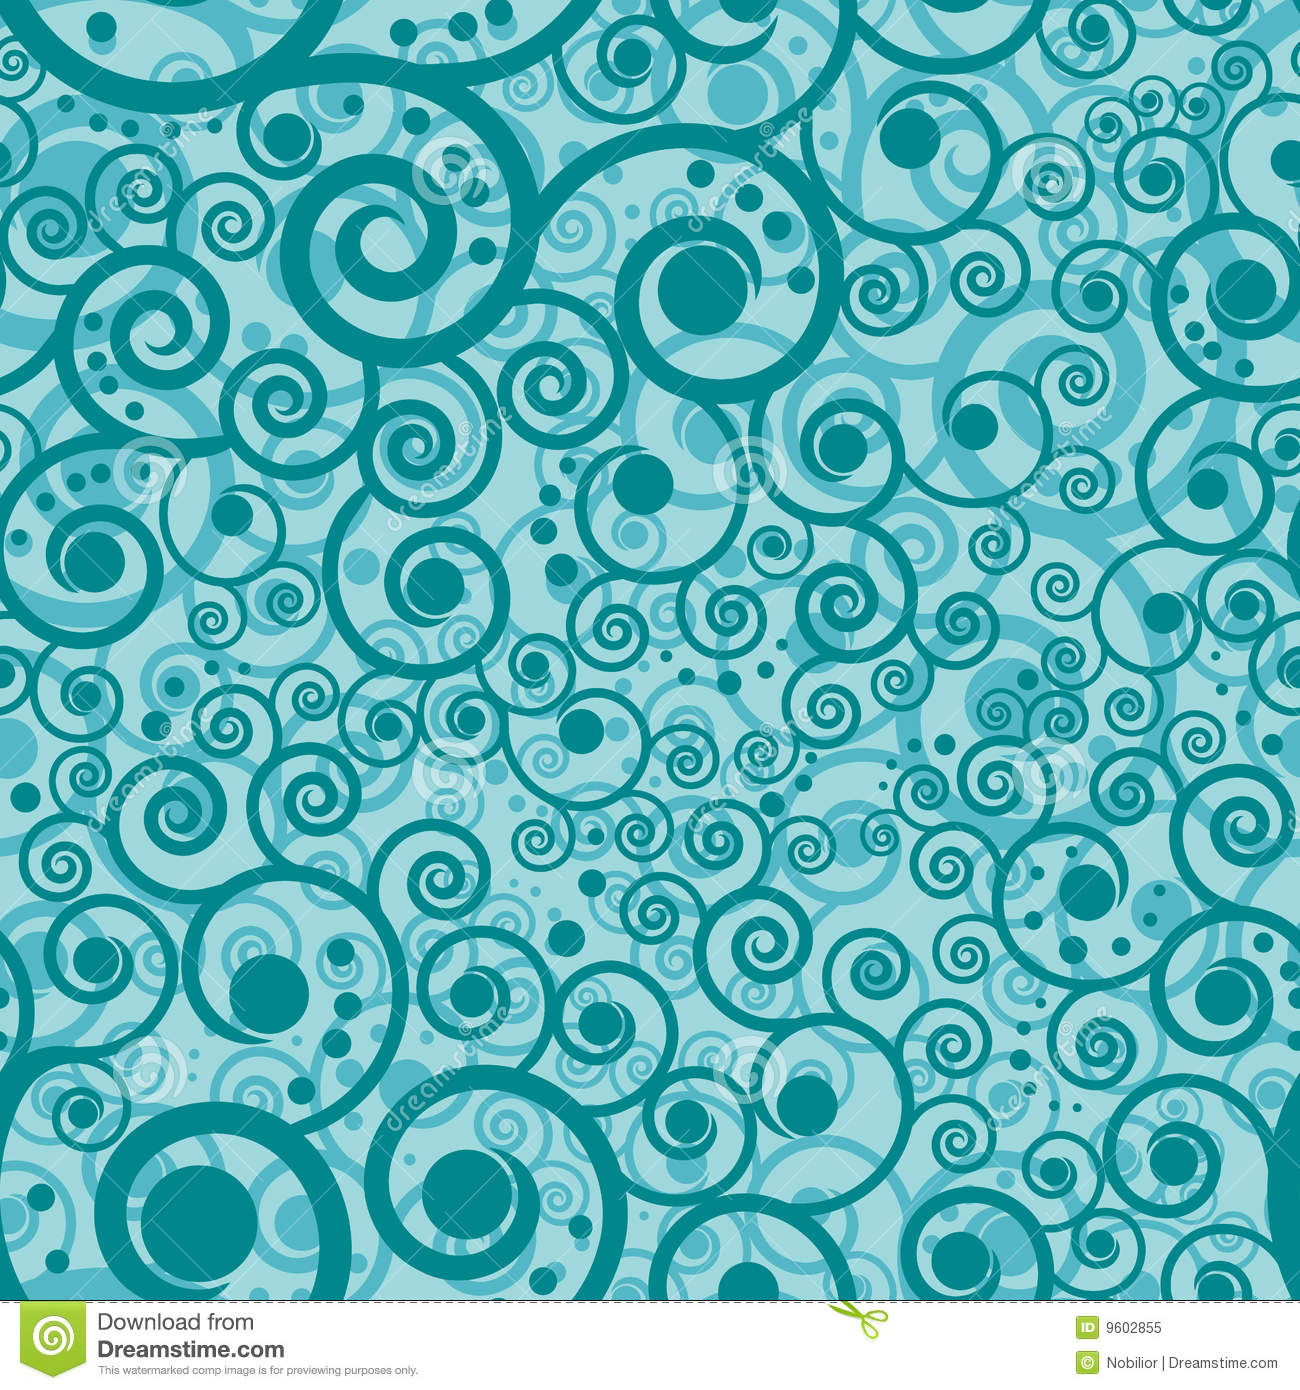 turquoise swirls design wallpapers - photo #17